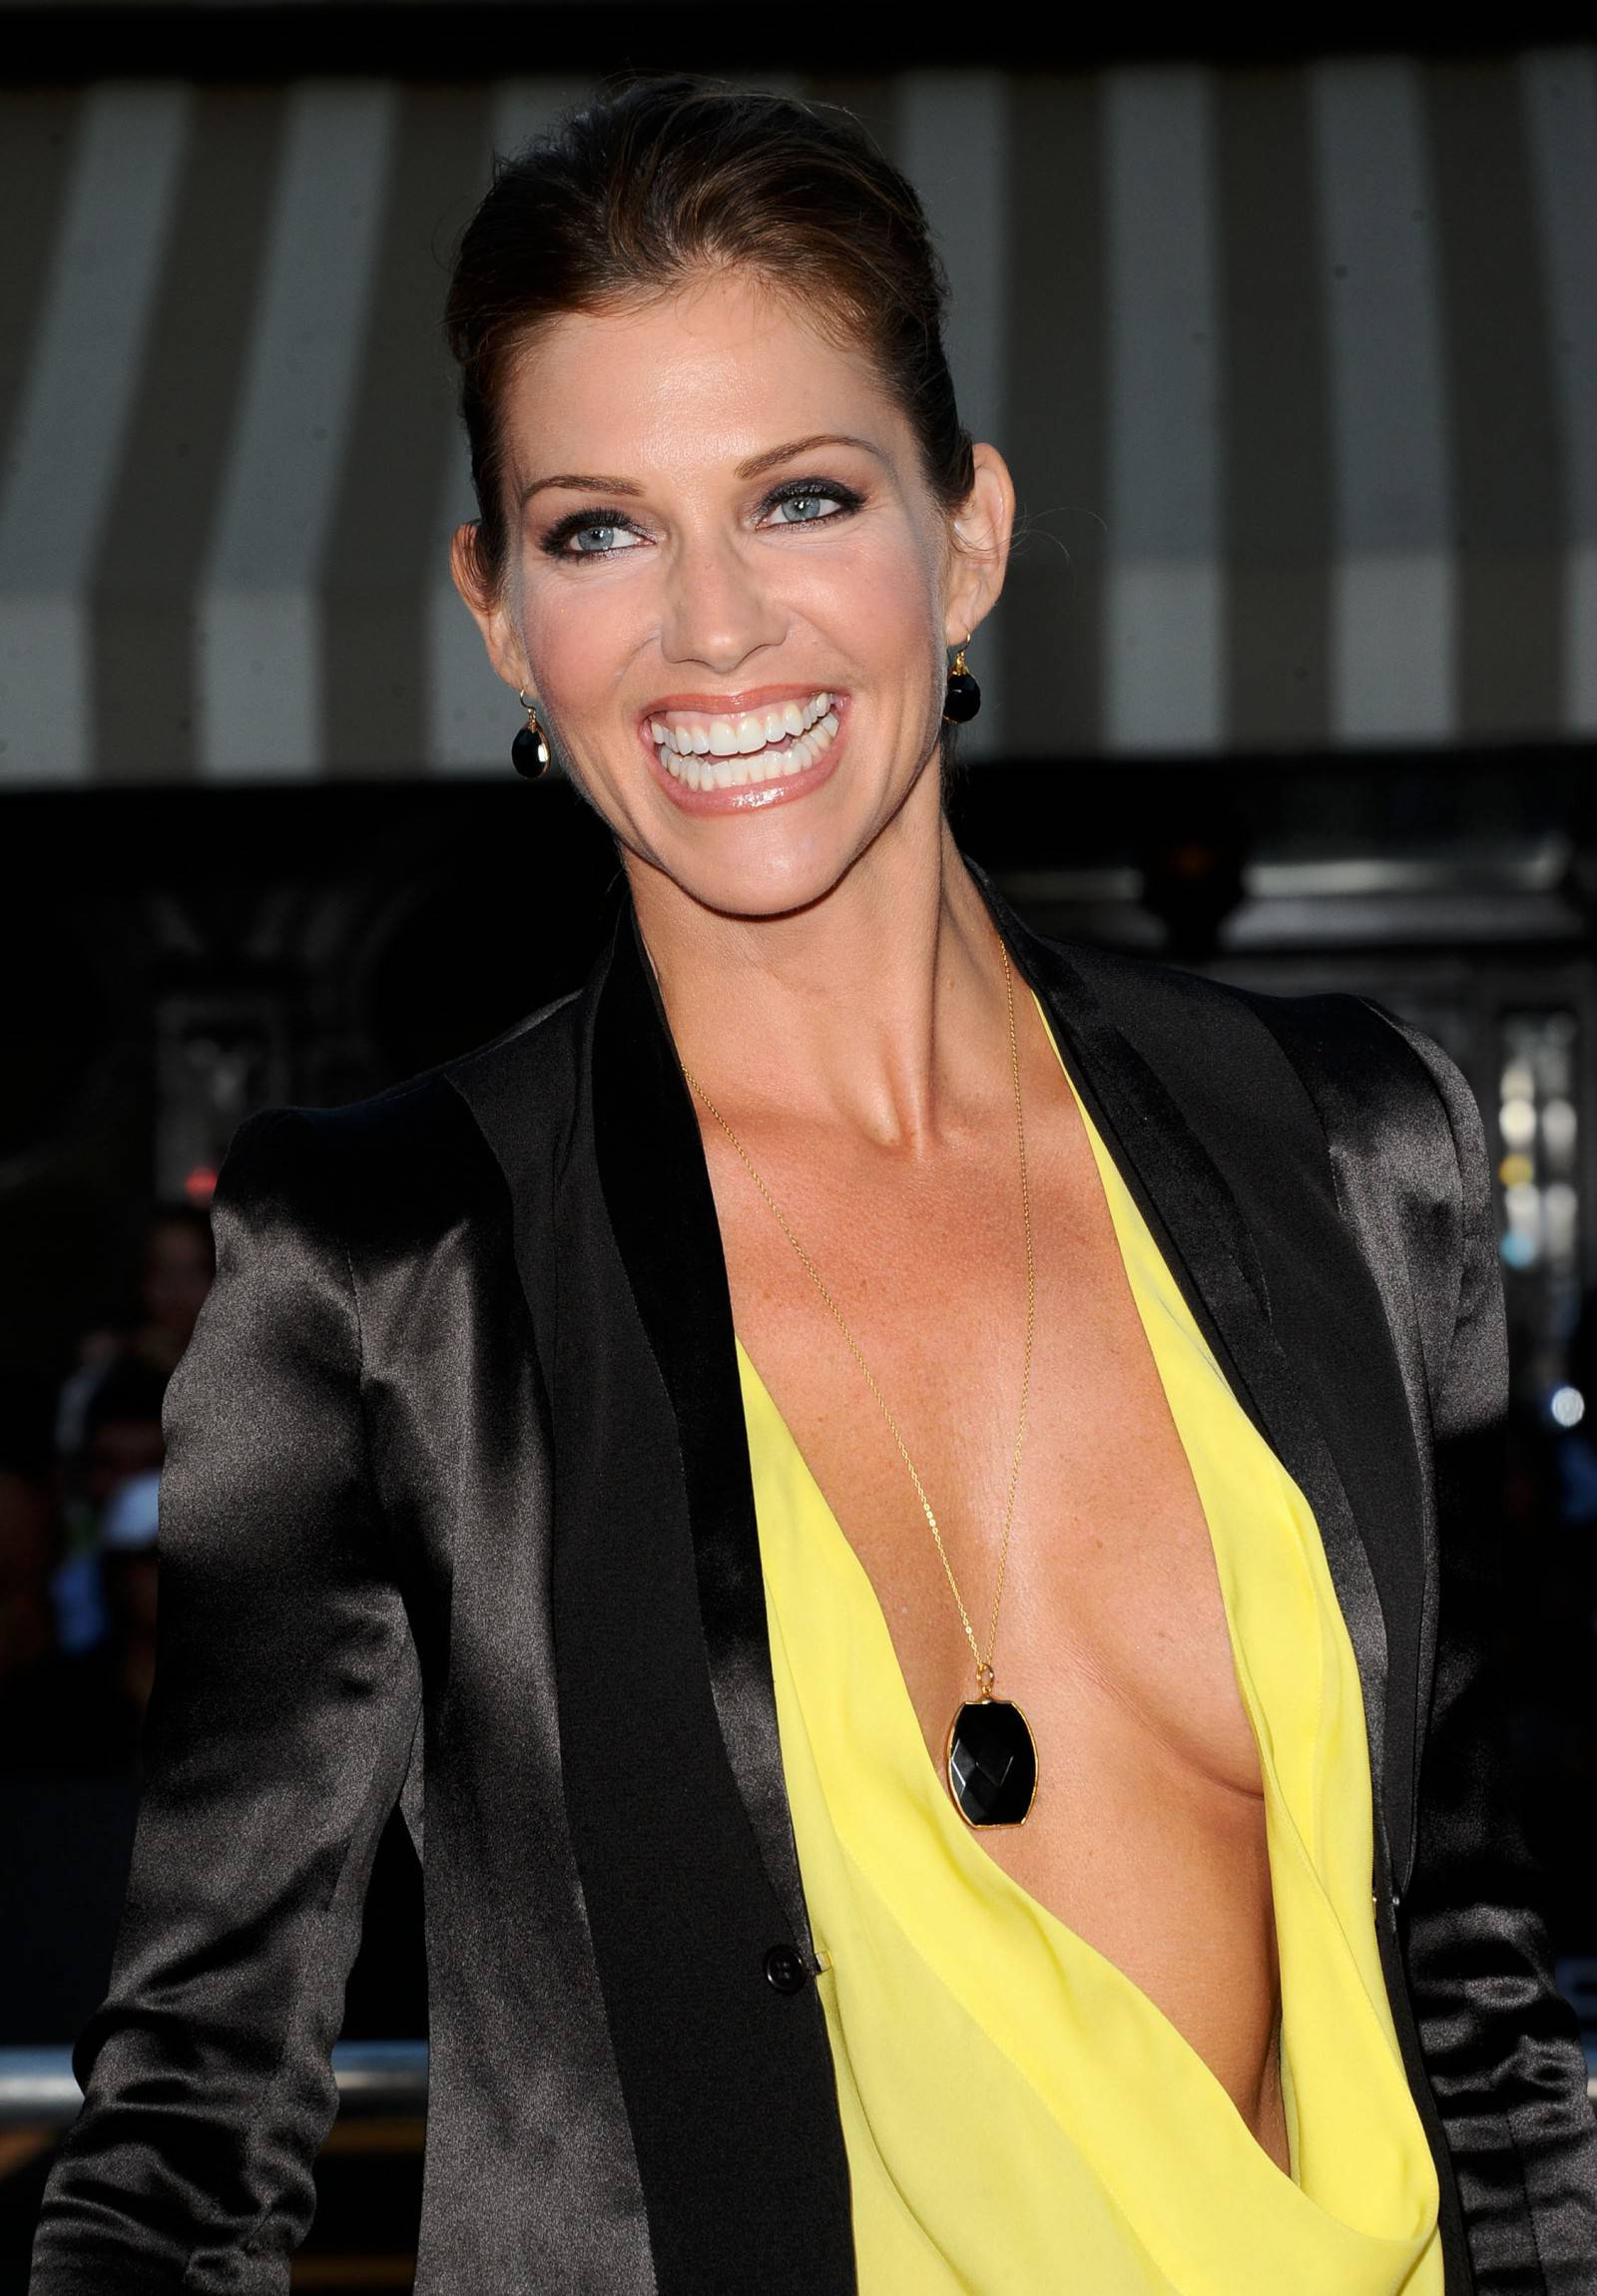 tricia helfer interviewtricia helfer lucifer, tricia helfer battlestar galactica, tricia helfer 2016, tricia helfer фото, tricia helfer fansite, tricia helfer fan, tricia helfer 2017, tricia helfer husband, tricia helfer twitter, tricia helfer vimeo, tricia helfer rick and morty, tricia helfer interview, tricia helfer rosewood, tricia helfer instagram, tricia helfer mass effect, tricia helfer maxim photos, tricia helfer wiki, tricia helfer height in feet, tricia helfer howlin for you, tricia helfer victoria's secret